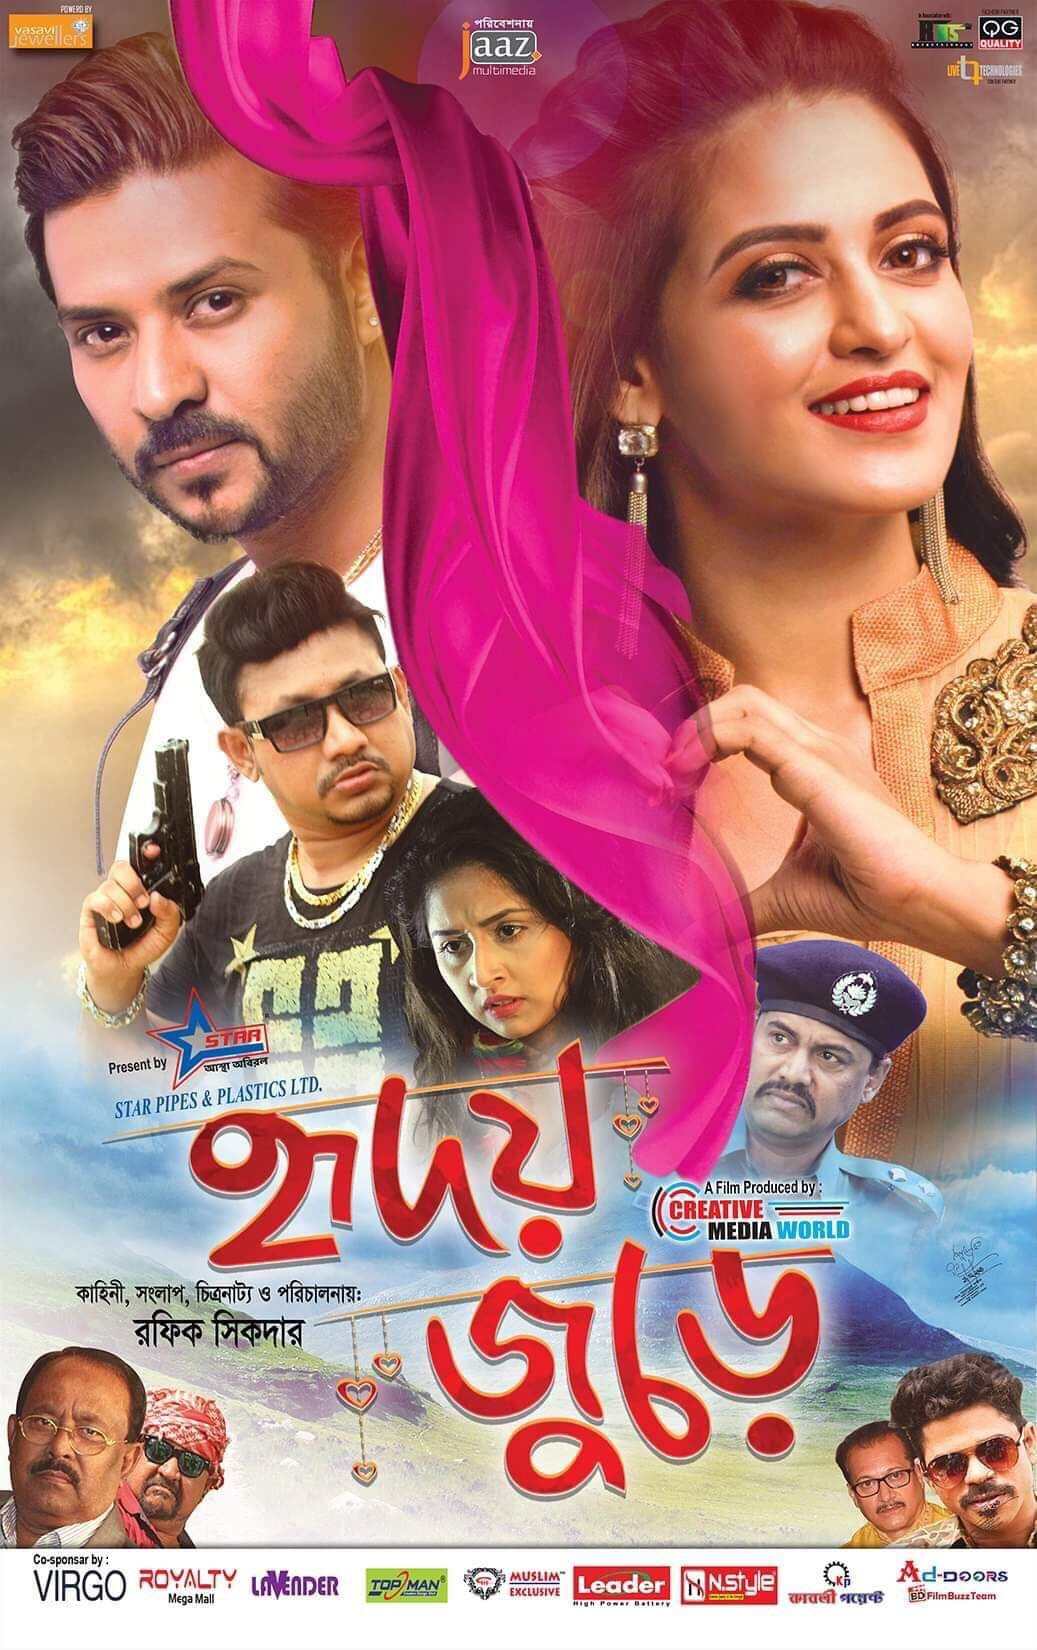 Hridoy Jure (2020) Bangla Movie 720p HDRip 1GB | 350MB MKV *Tamil Bangla*